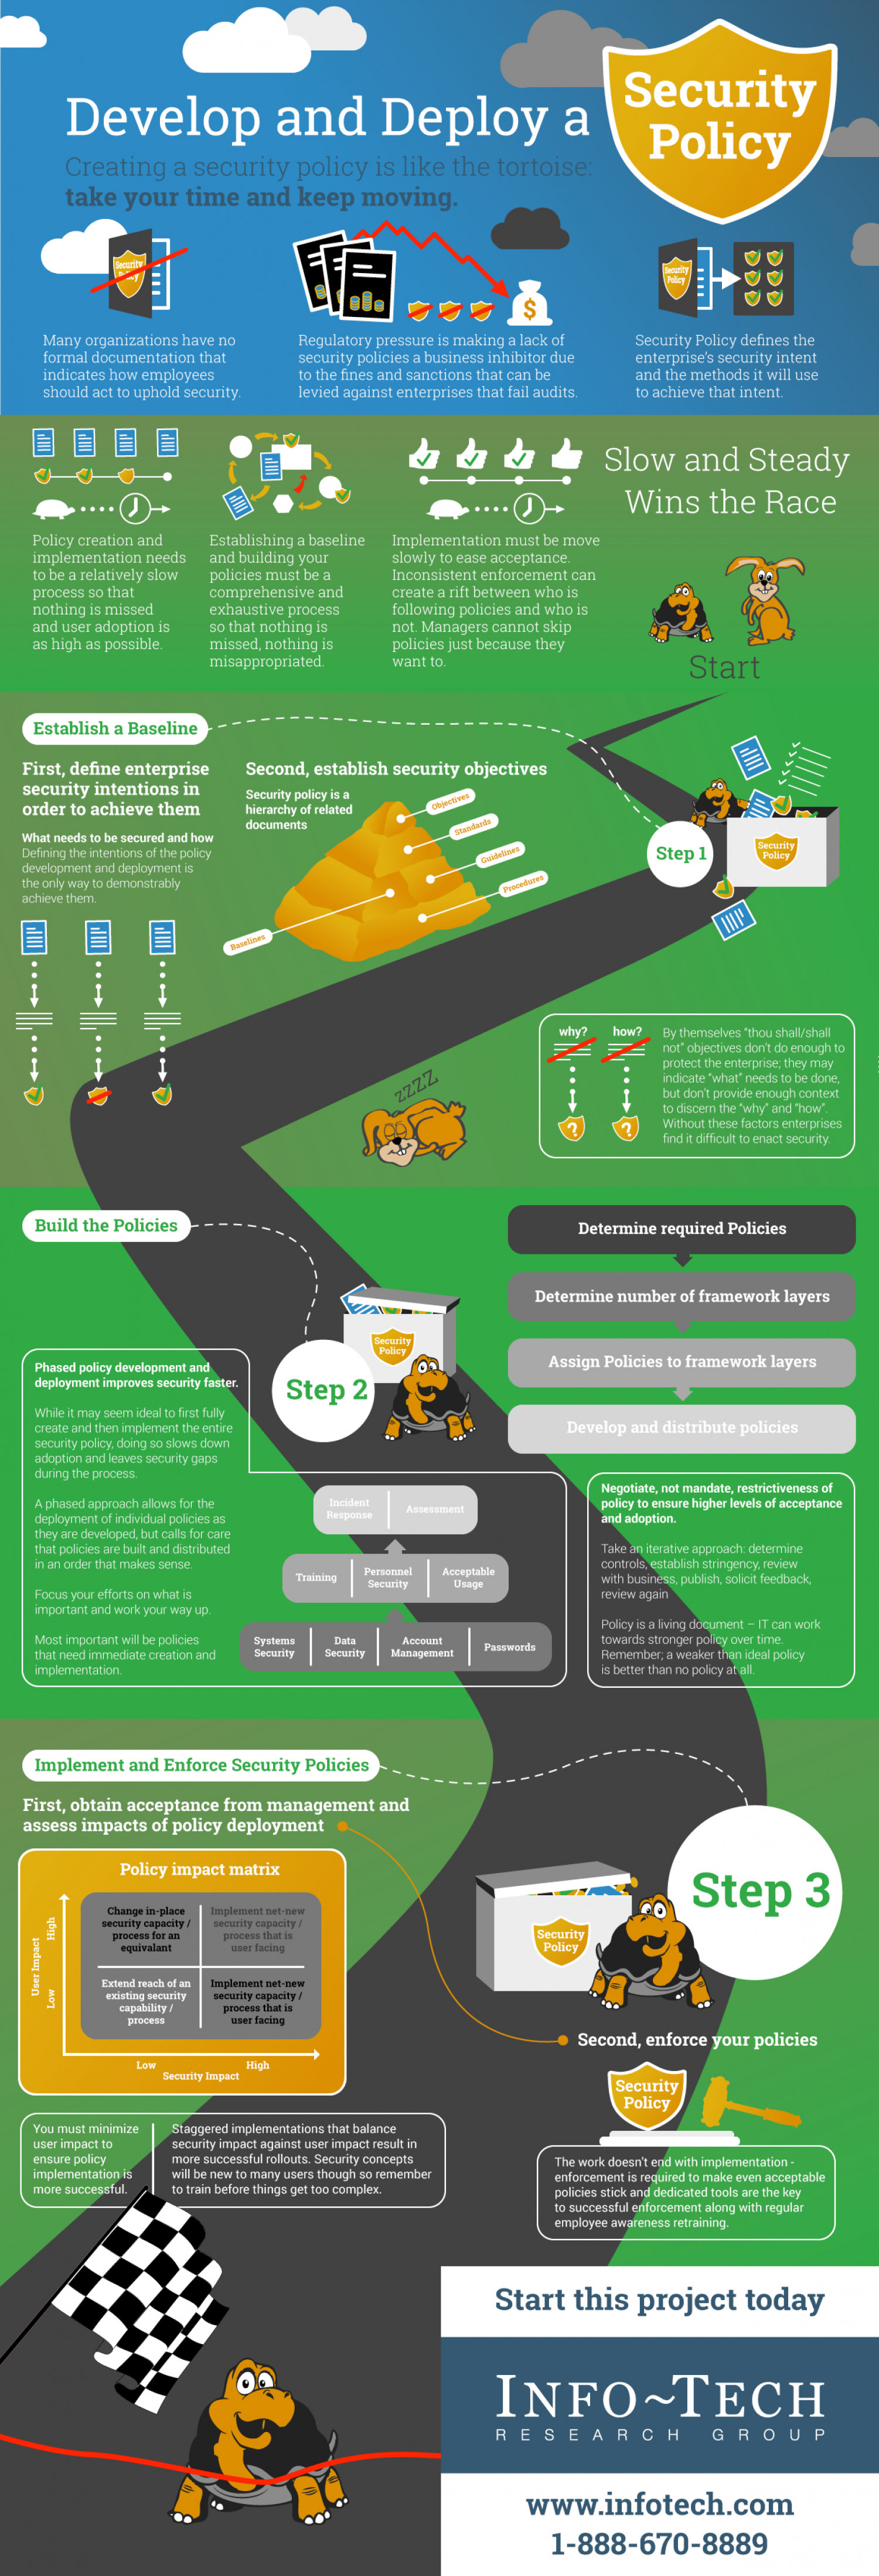 Develop and Deploy a Security Policy Infographic